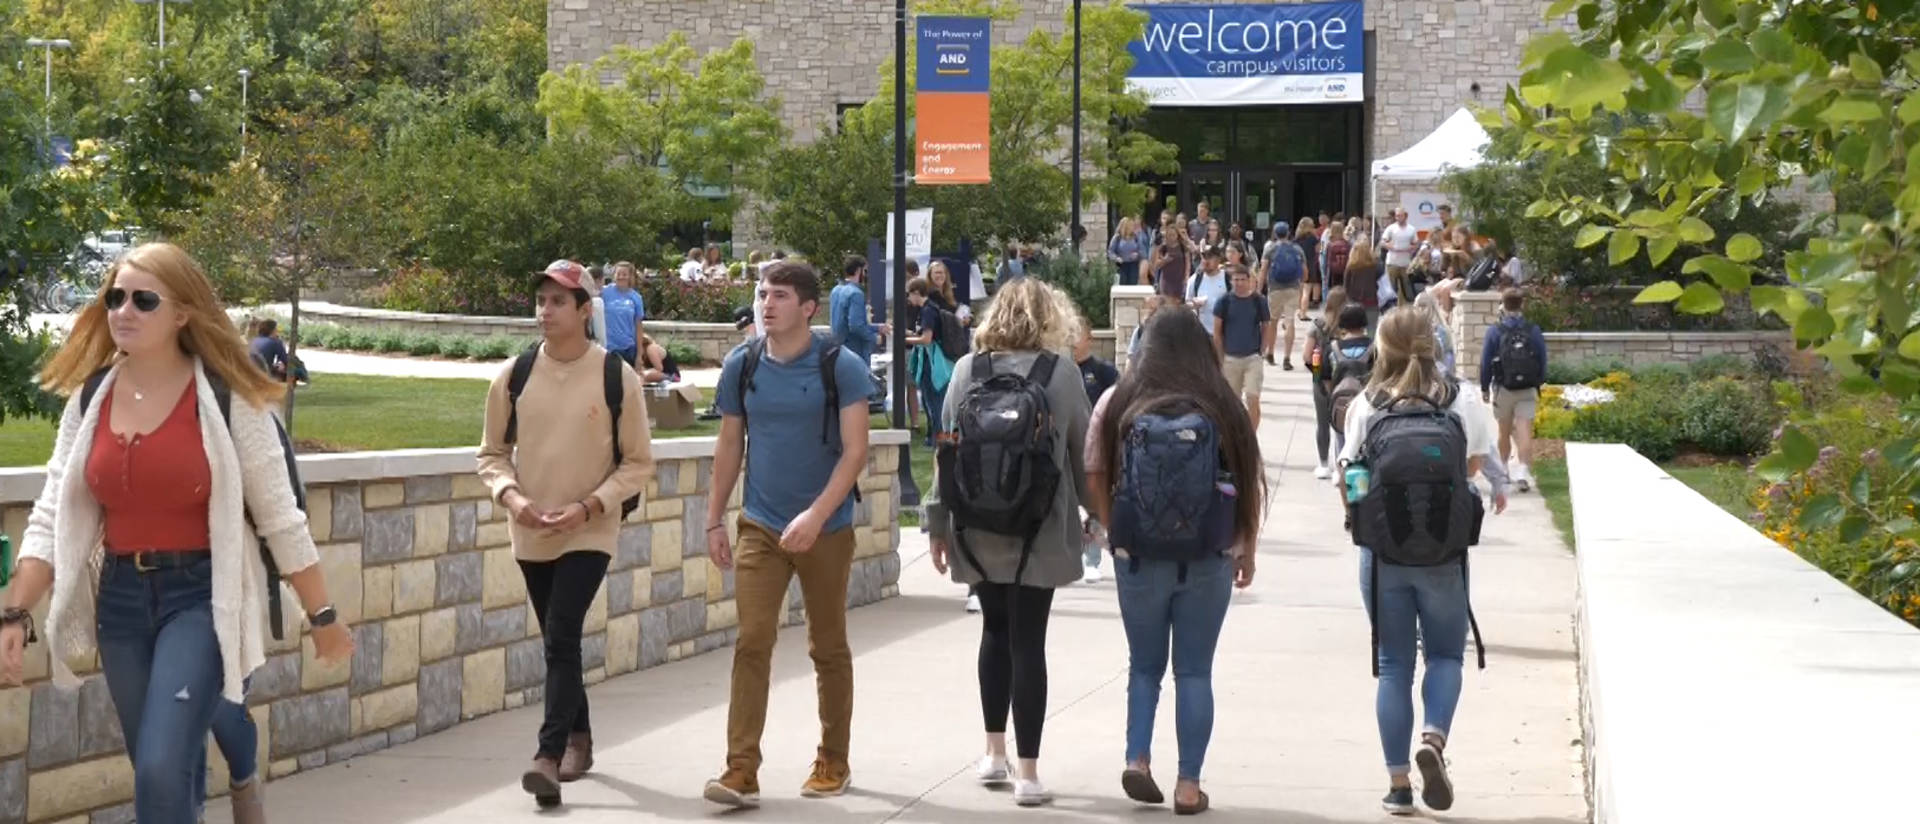 Students on first day, fall 2019